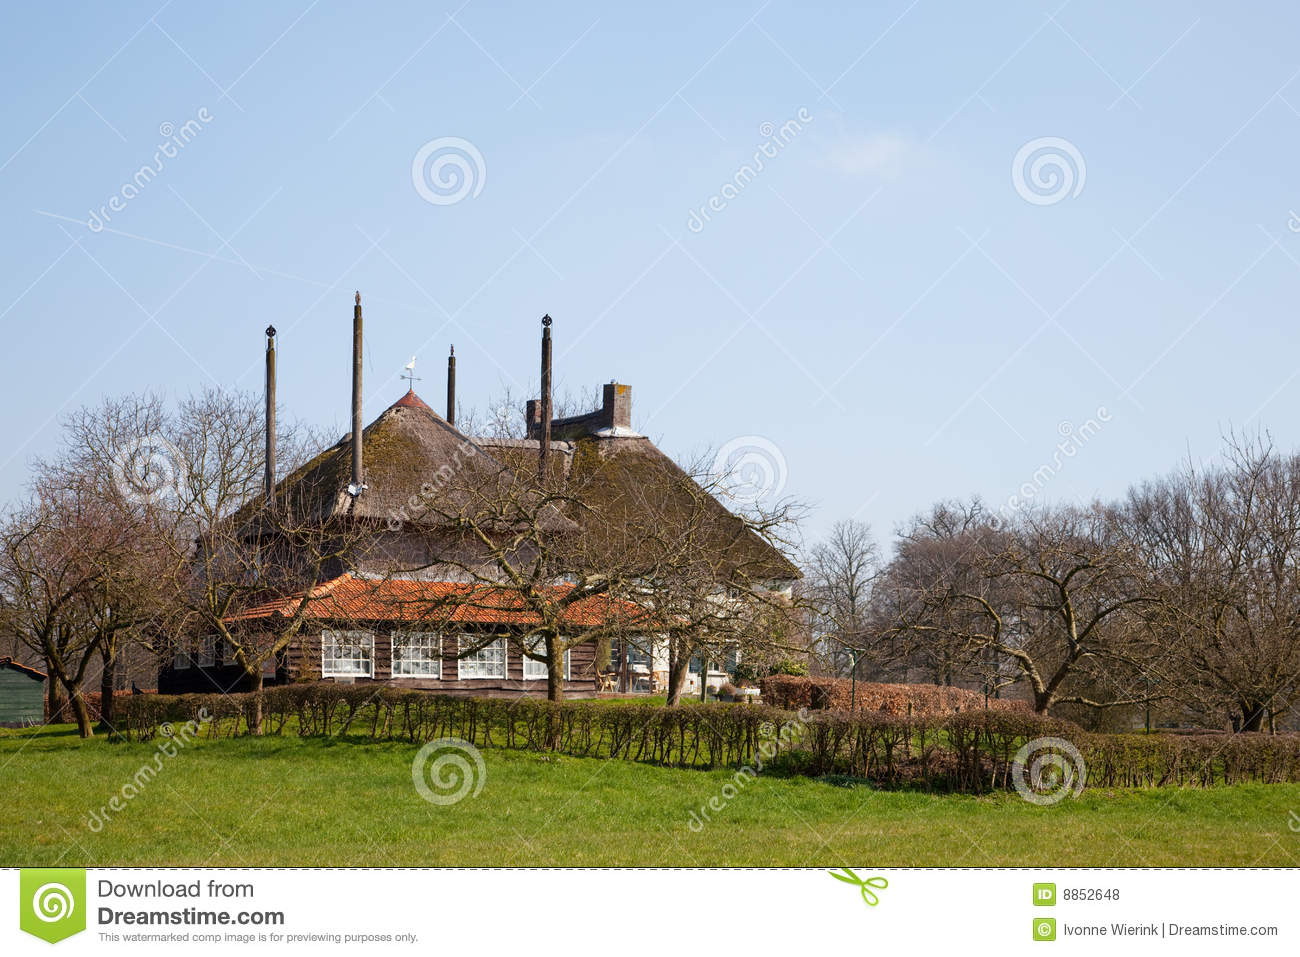 Farmhouse in dutch landscape royalty free stock photos for Farm house netherlands